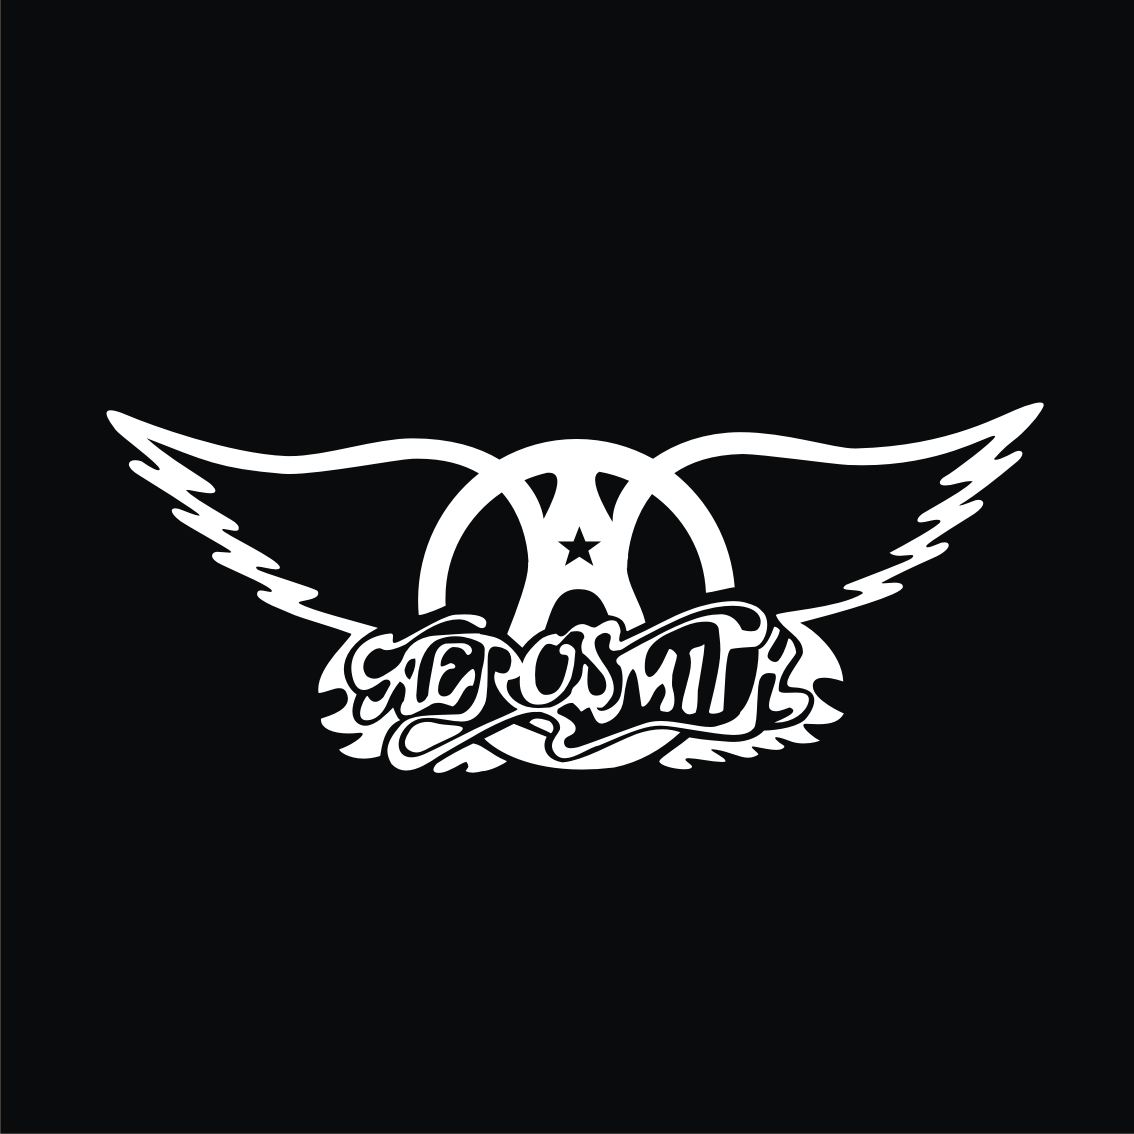 Aerosmith | Publish with Glogster!